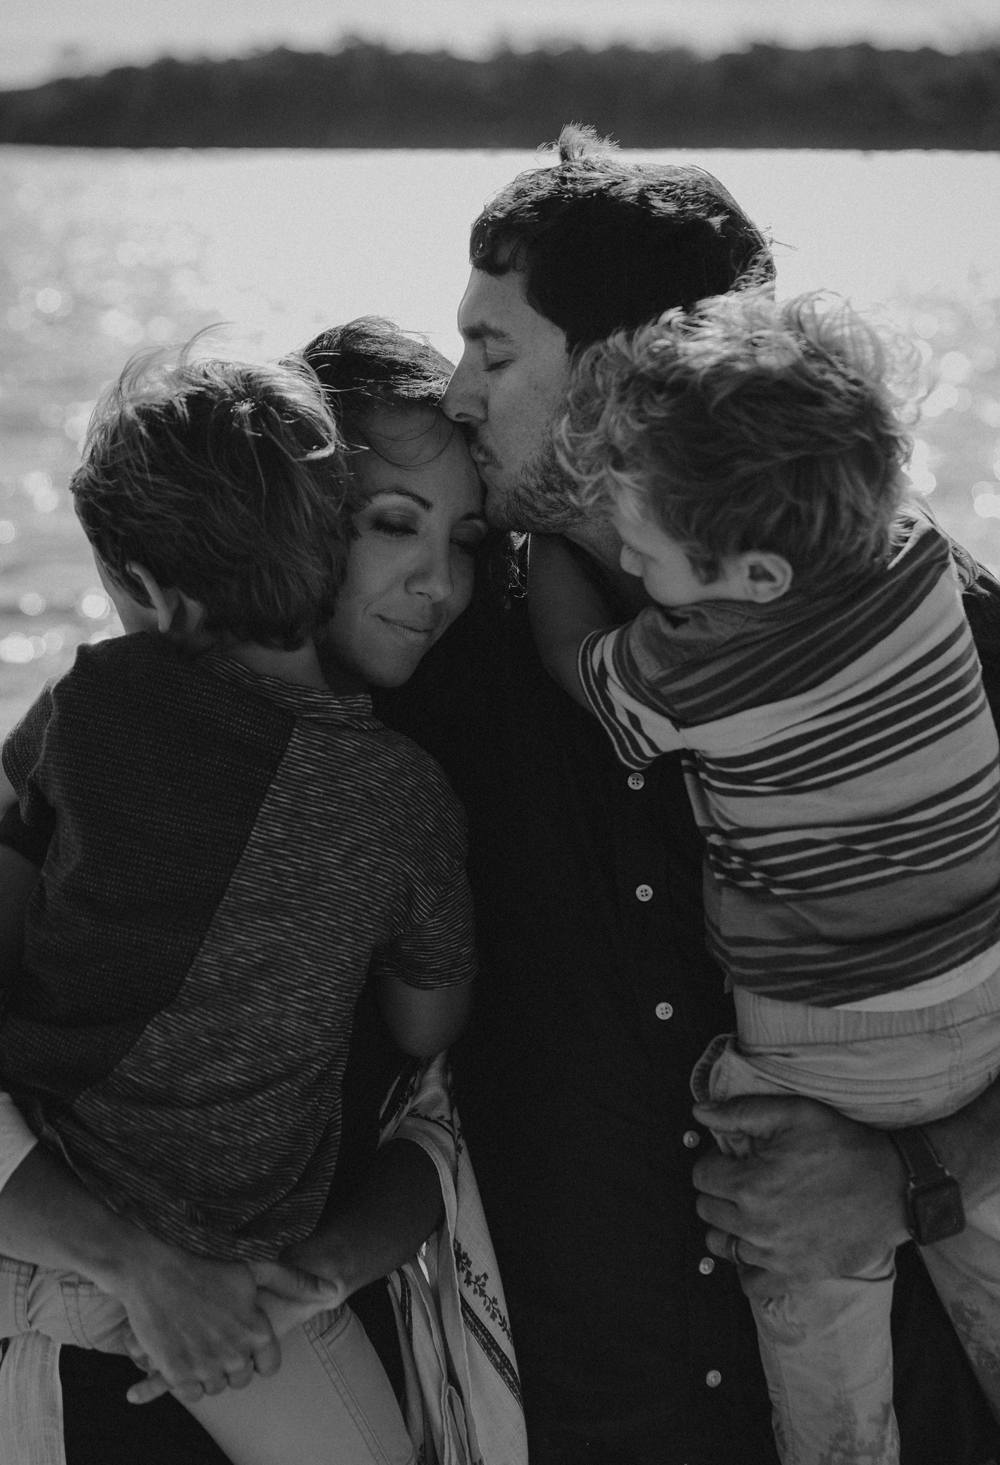 Naples Family Photographer, family of 4 huddled together near the water